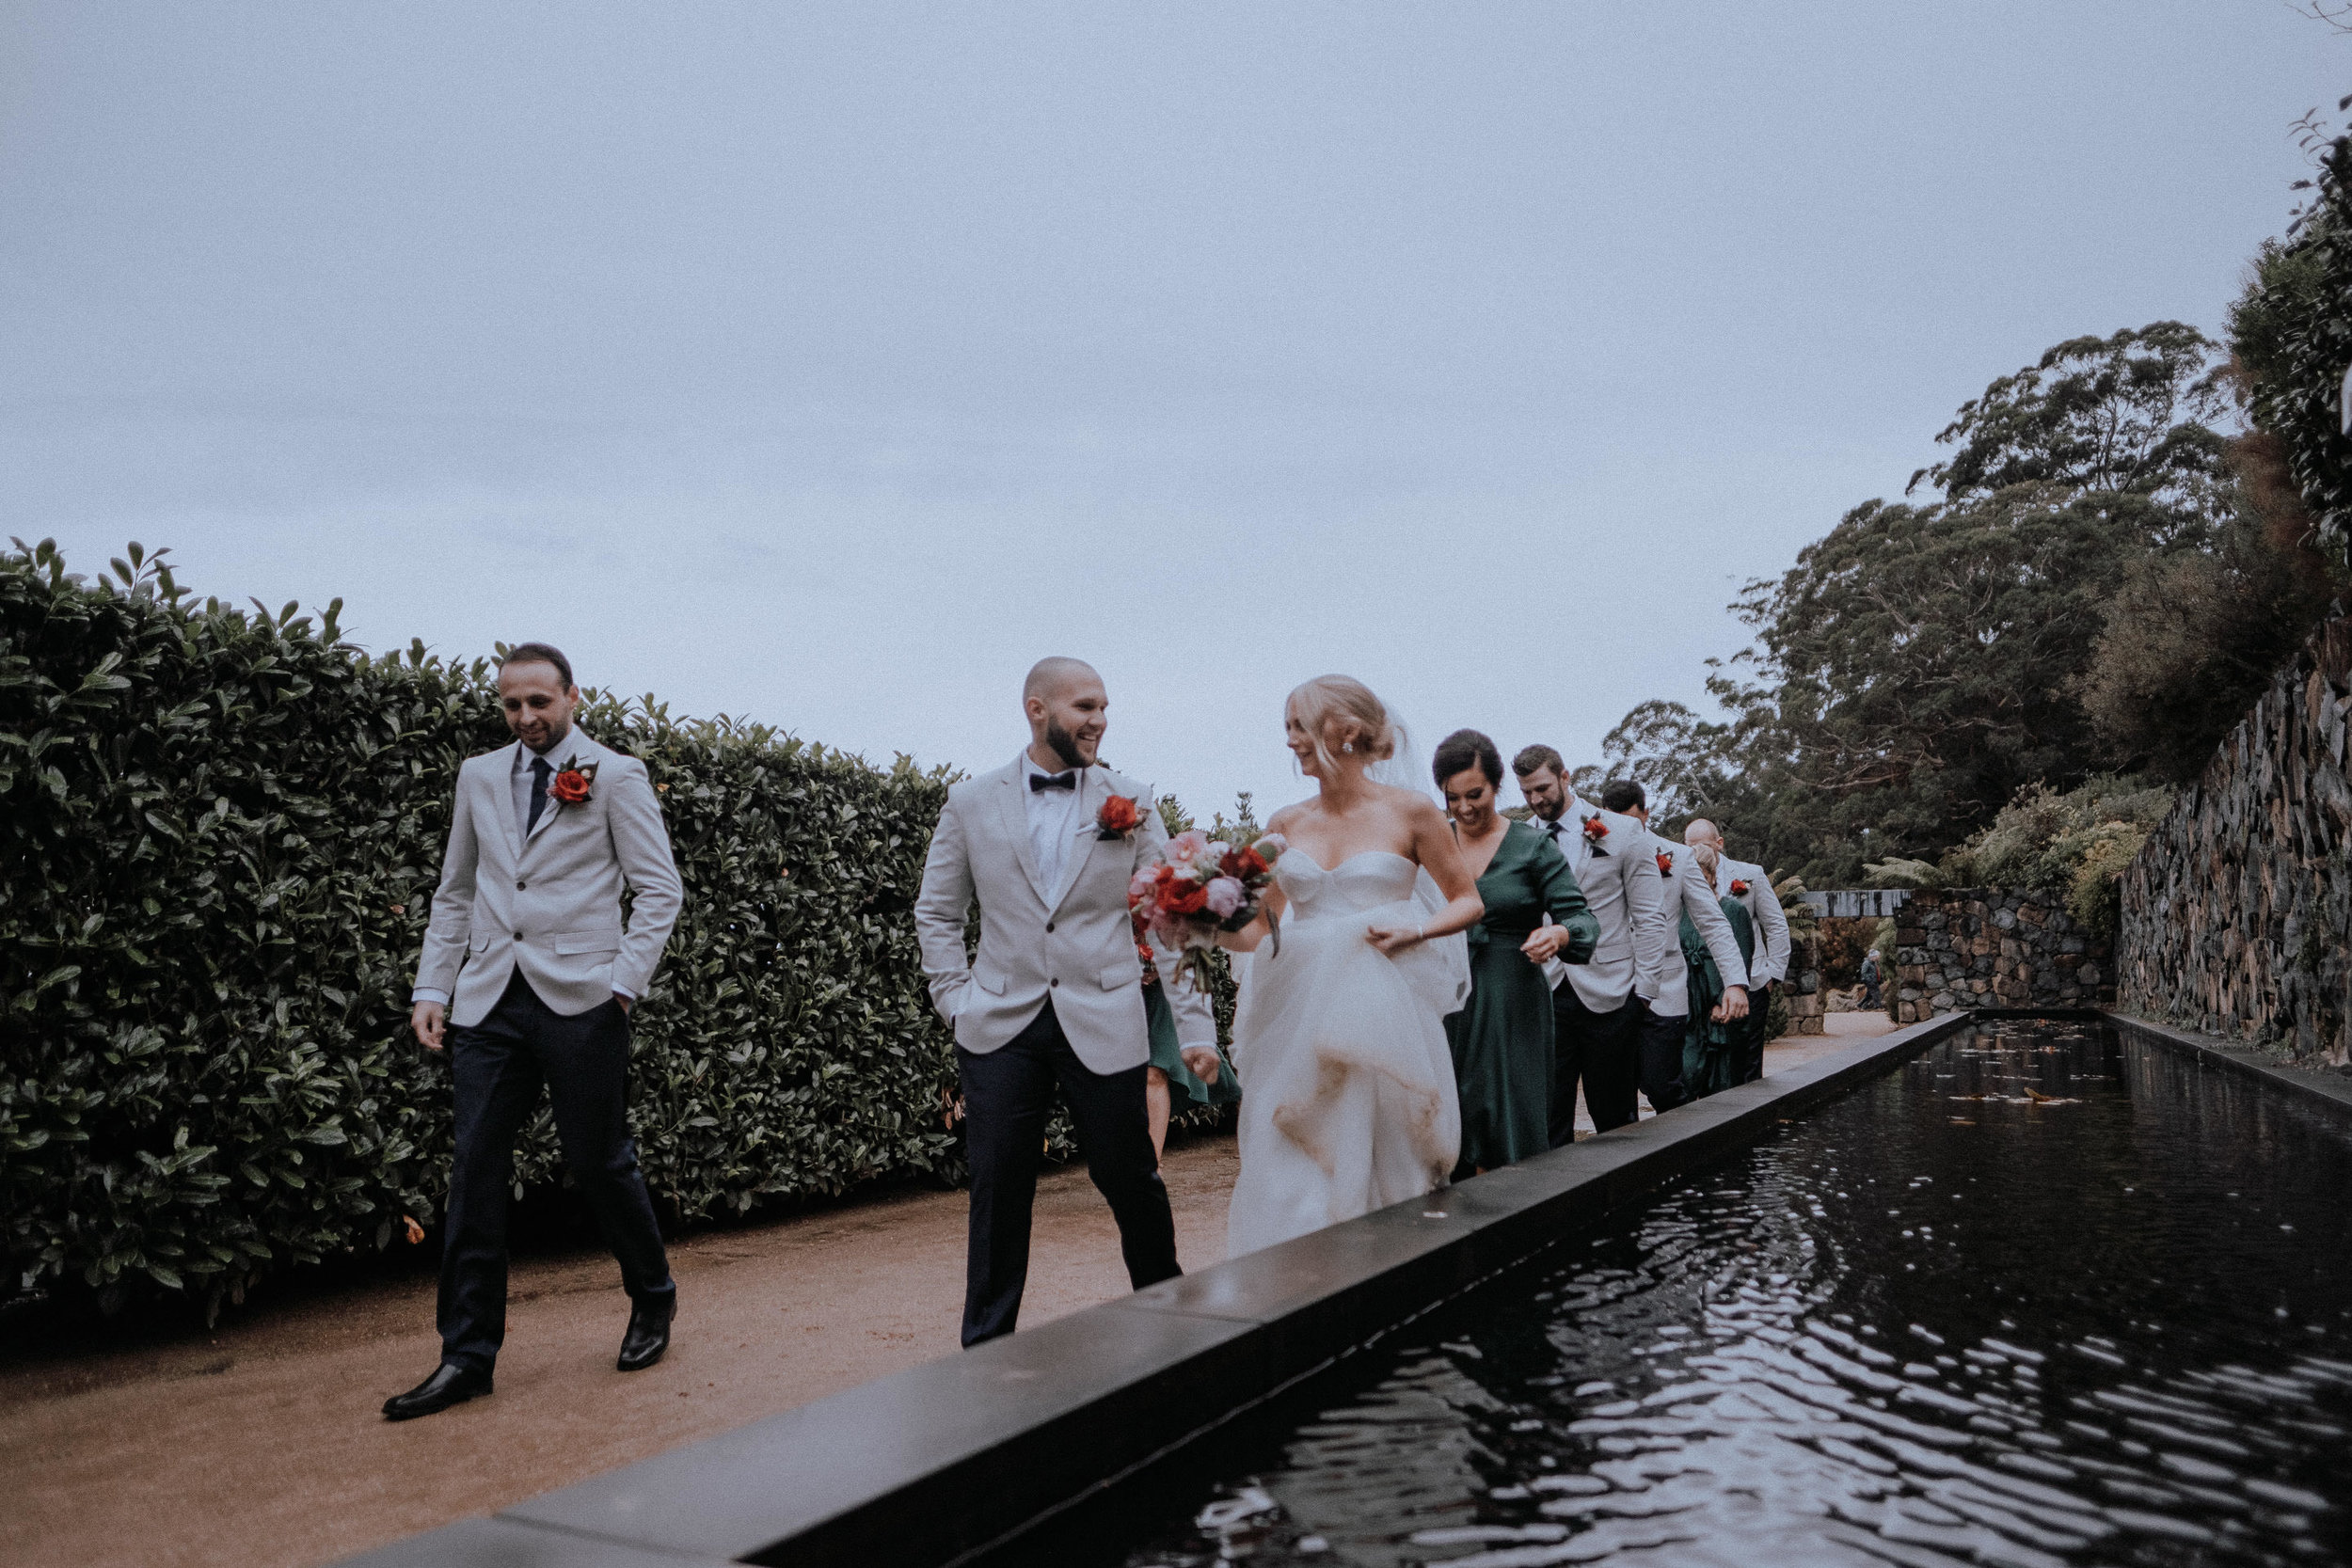 The wedding party at Mt Tomah Botanic Gardens